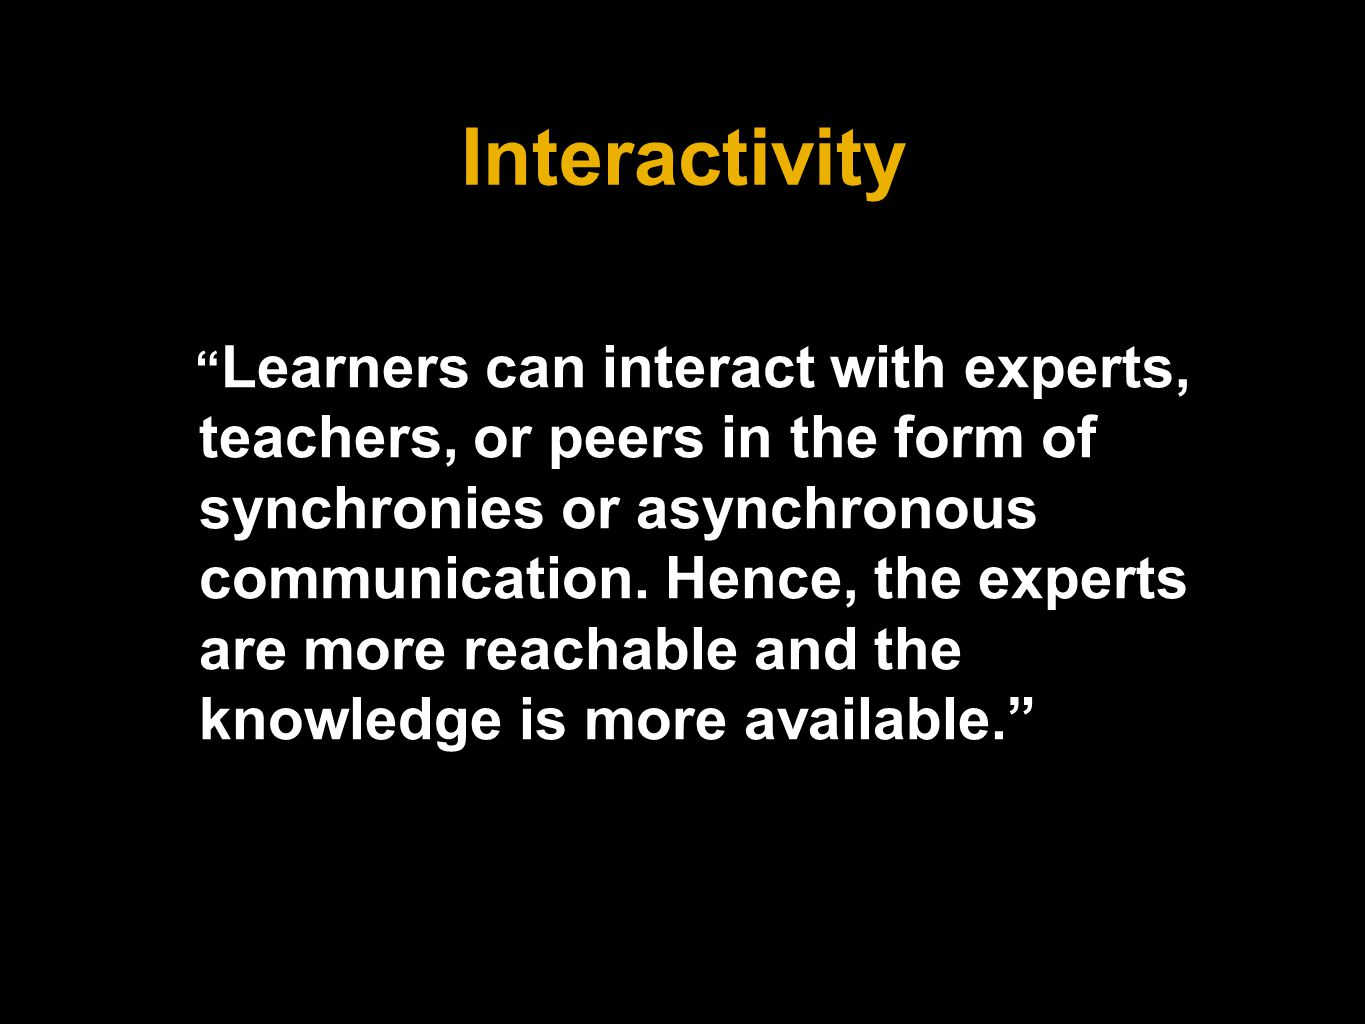 Interactivity Learners can interact with experts, teachers, or peers in the form of synchronies or asynchronous communication.